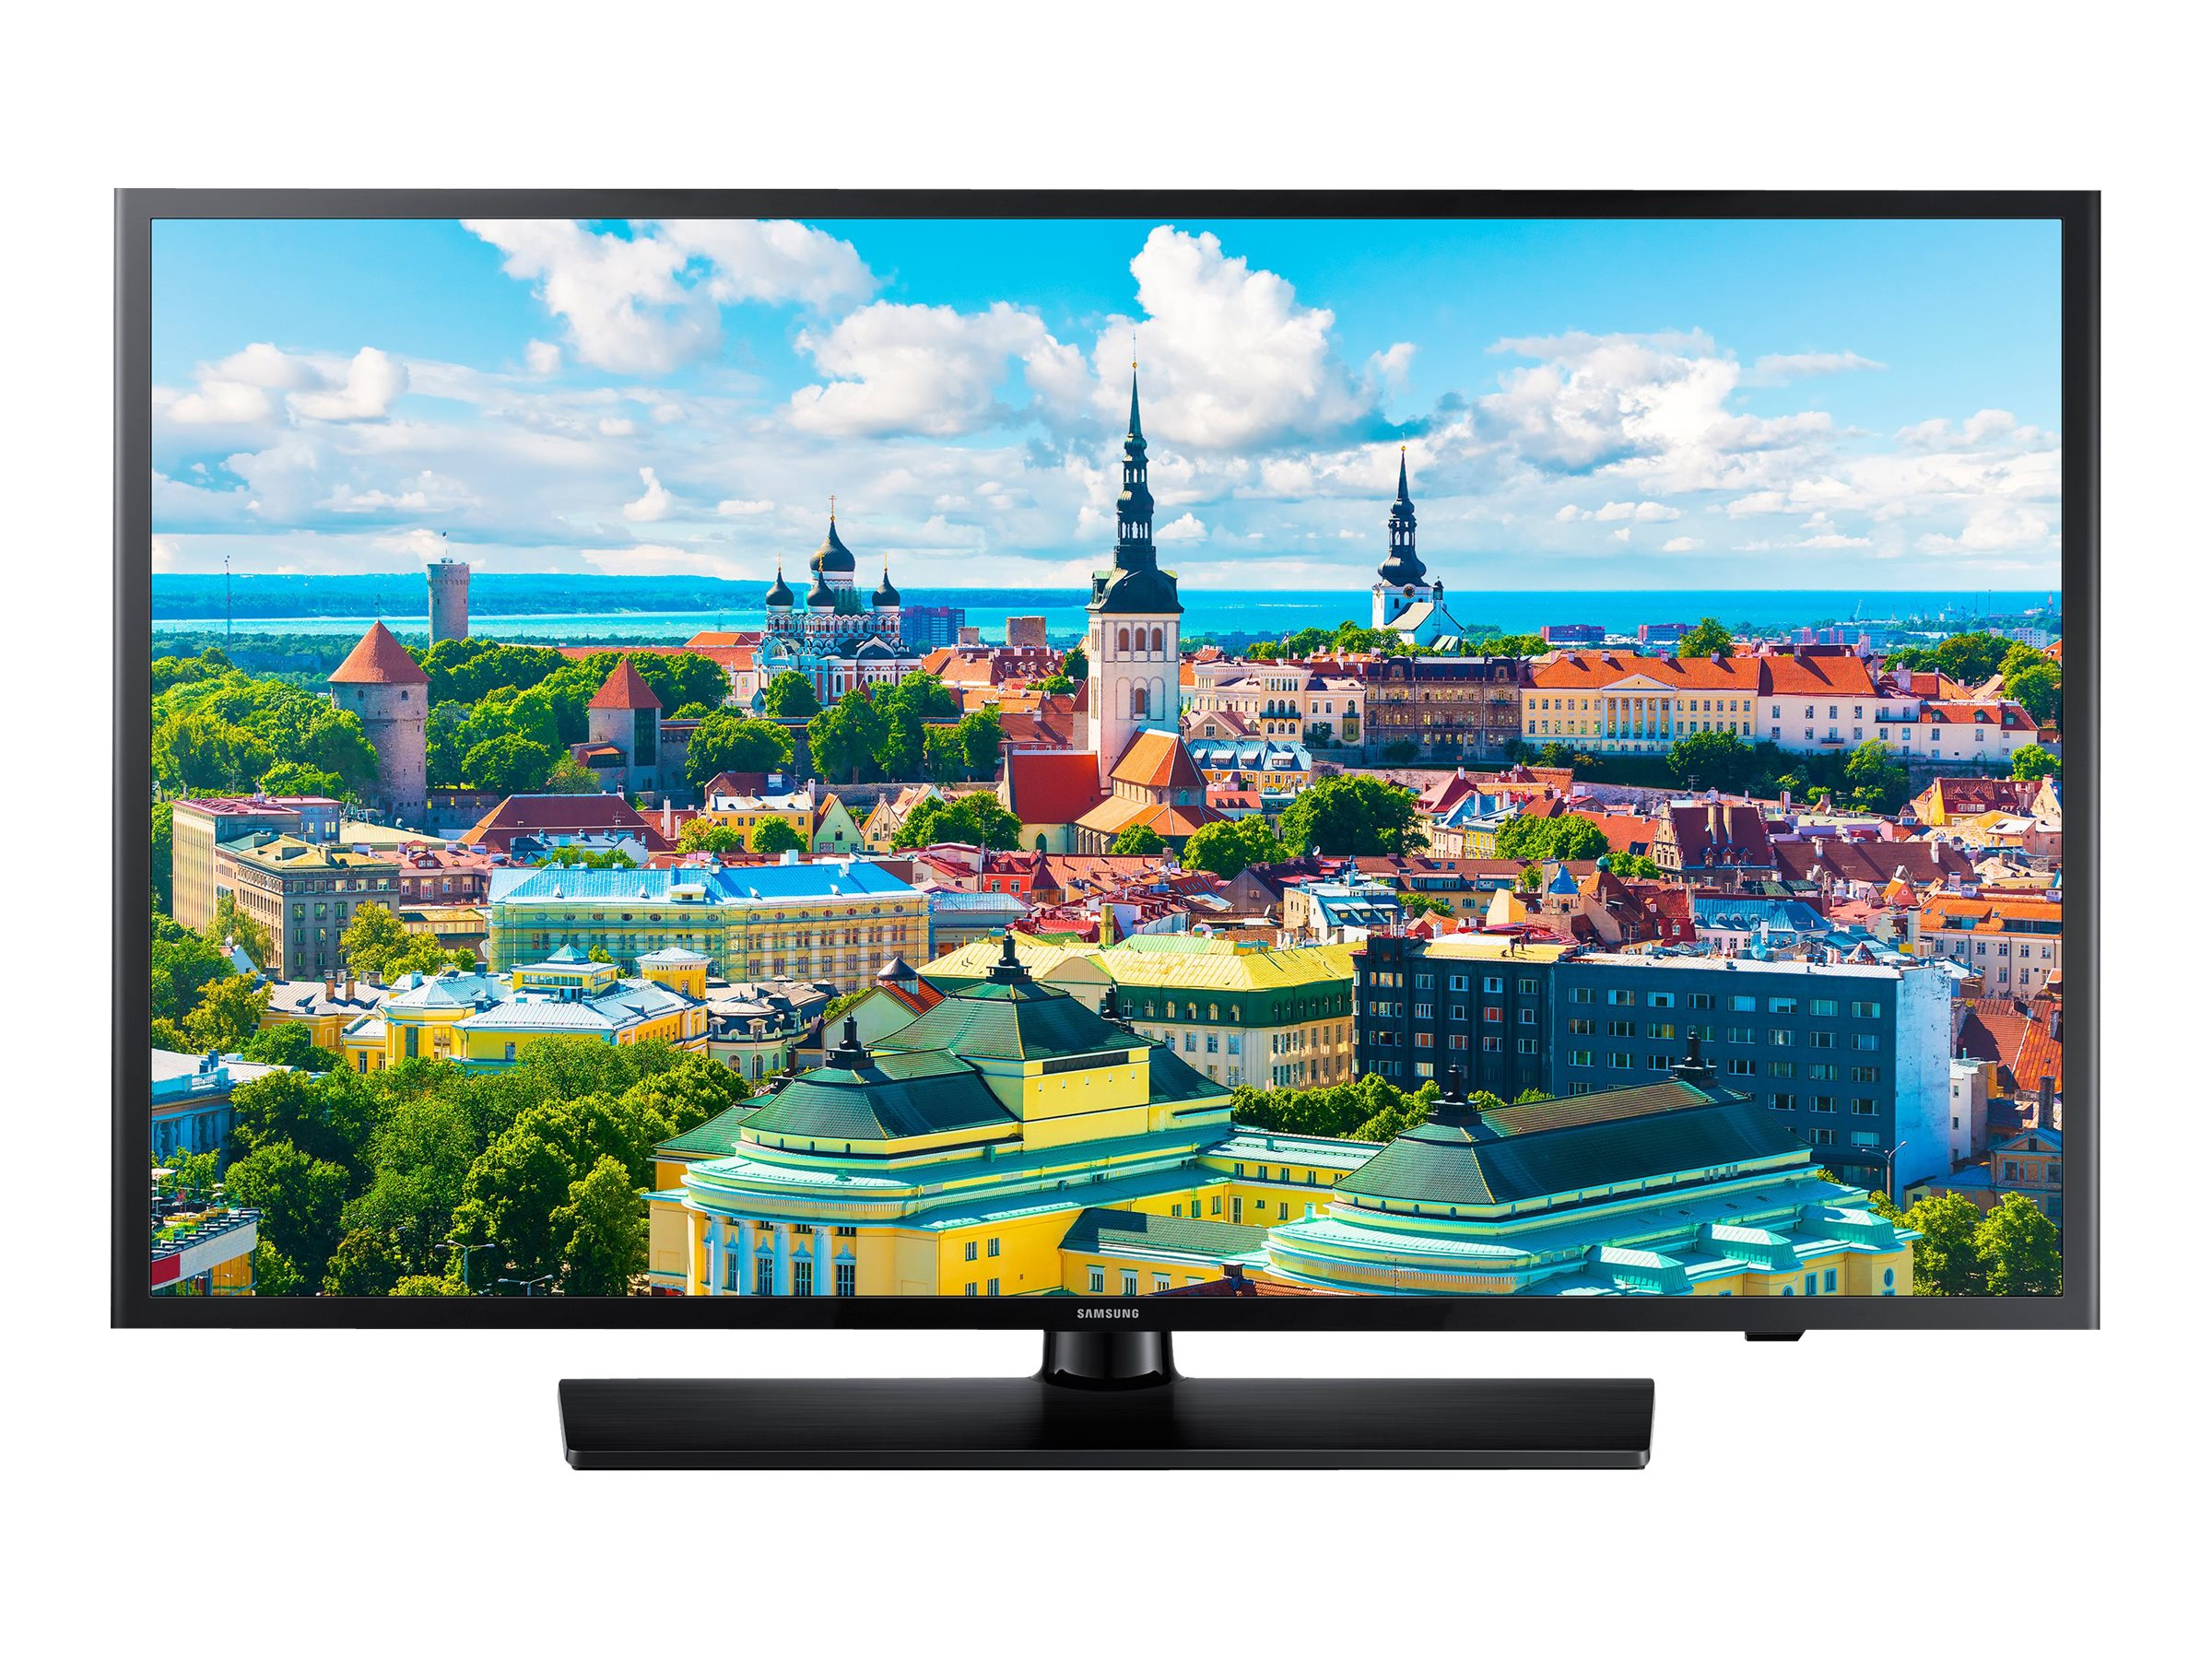 Samsung 50 478 Series Full HD LED-LCD Hospitality TV, Black, HG50ND478SFXZA, 30650266, Televisions - LED-LCD Commercial